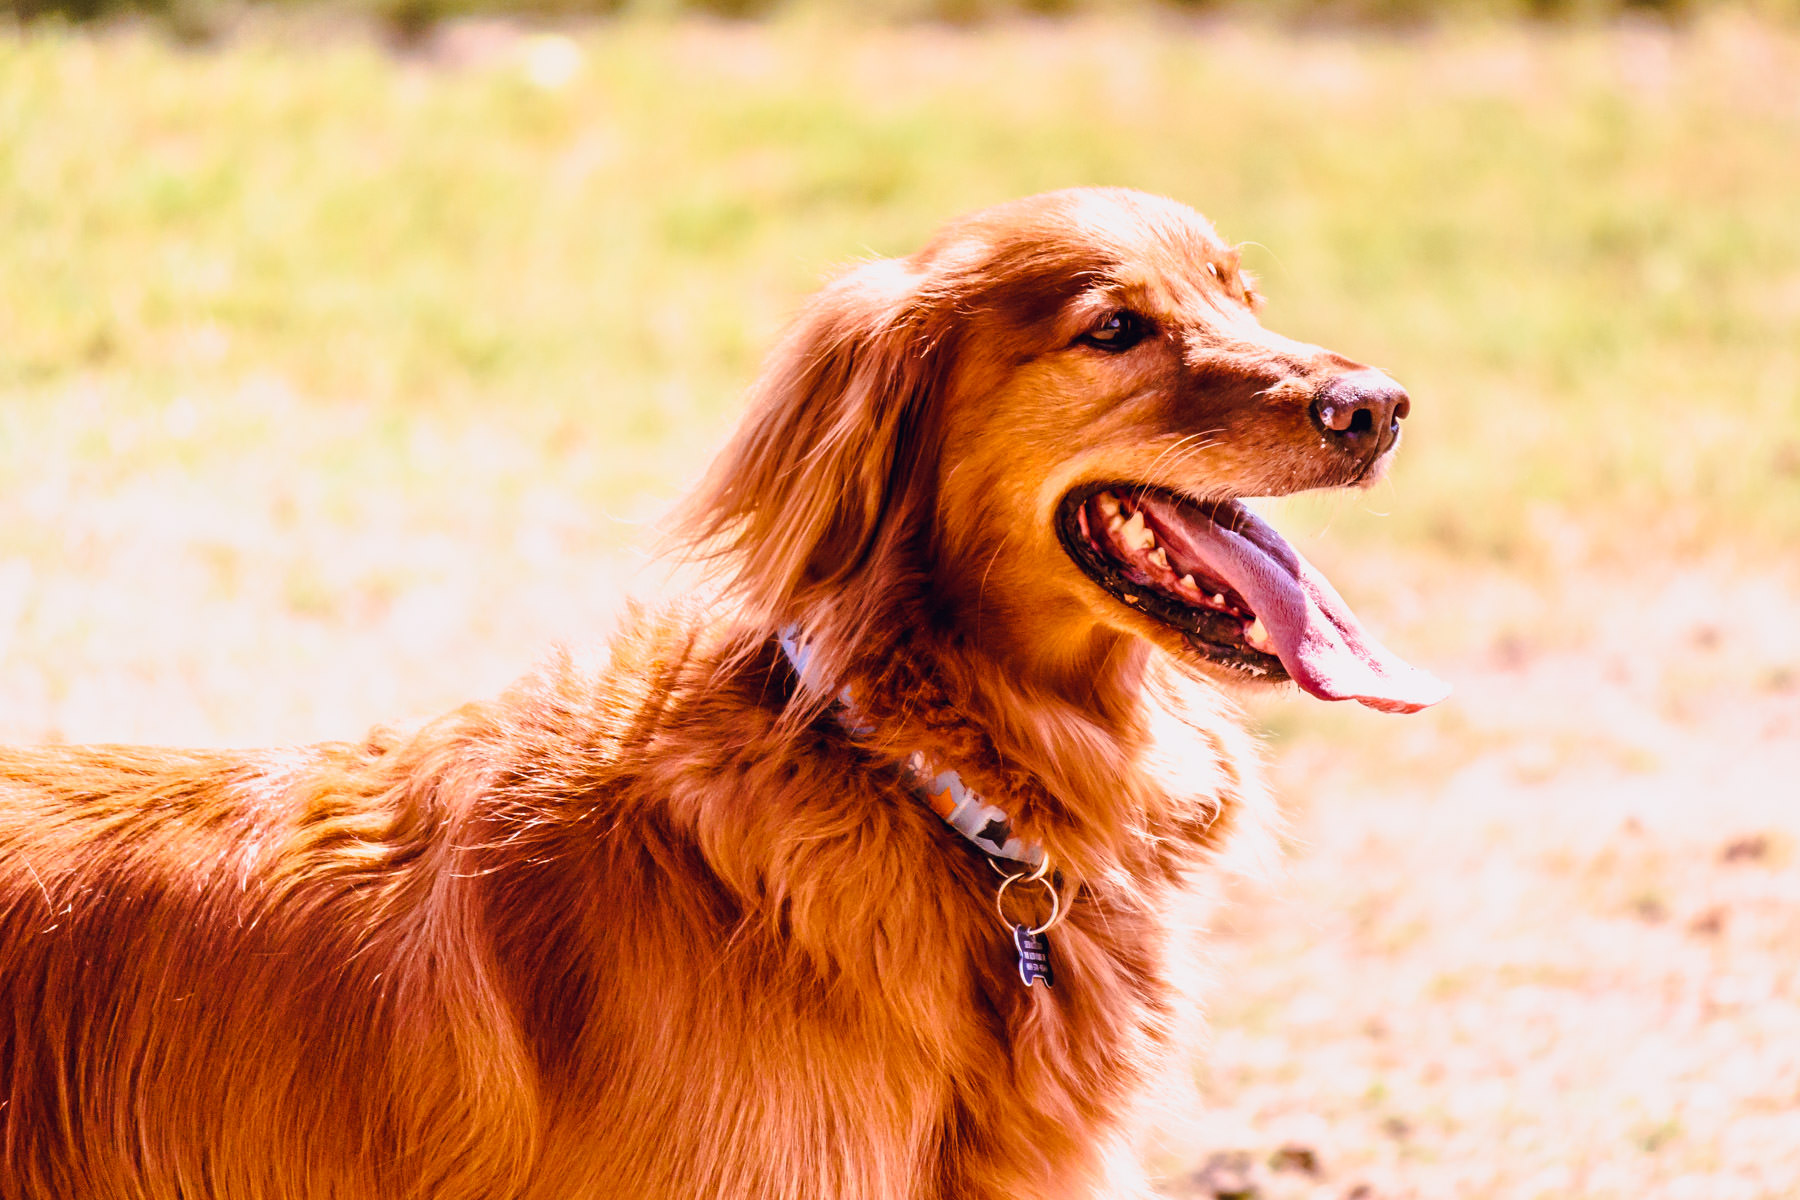 A golden retriever spotted at Wagging Tail Dog Park in Dallas.